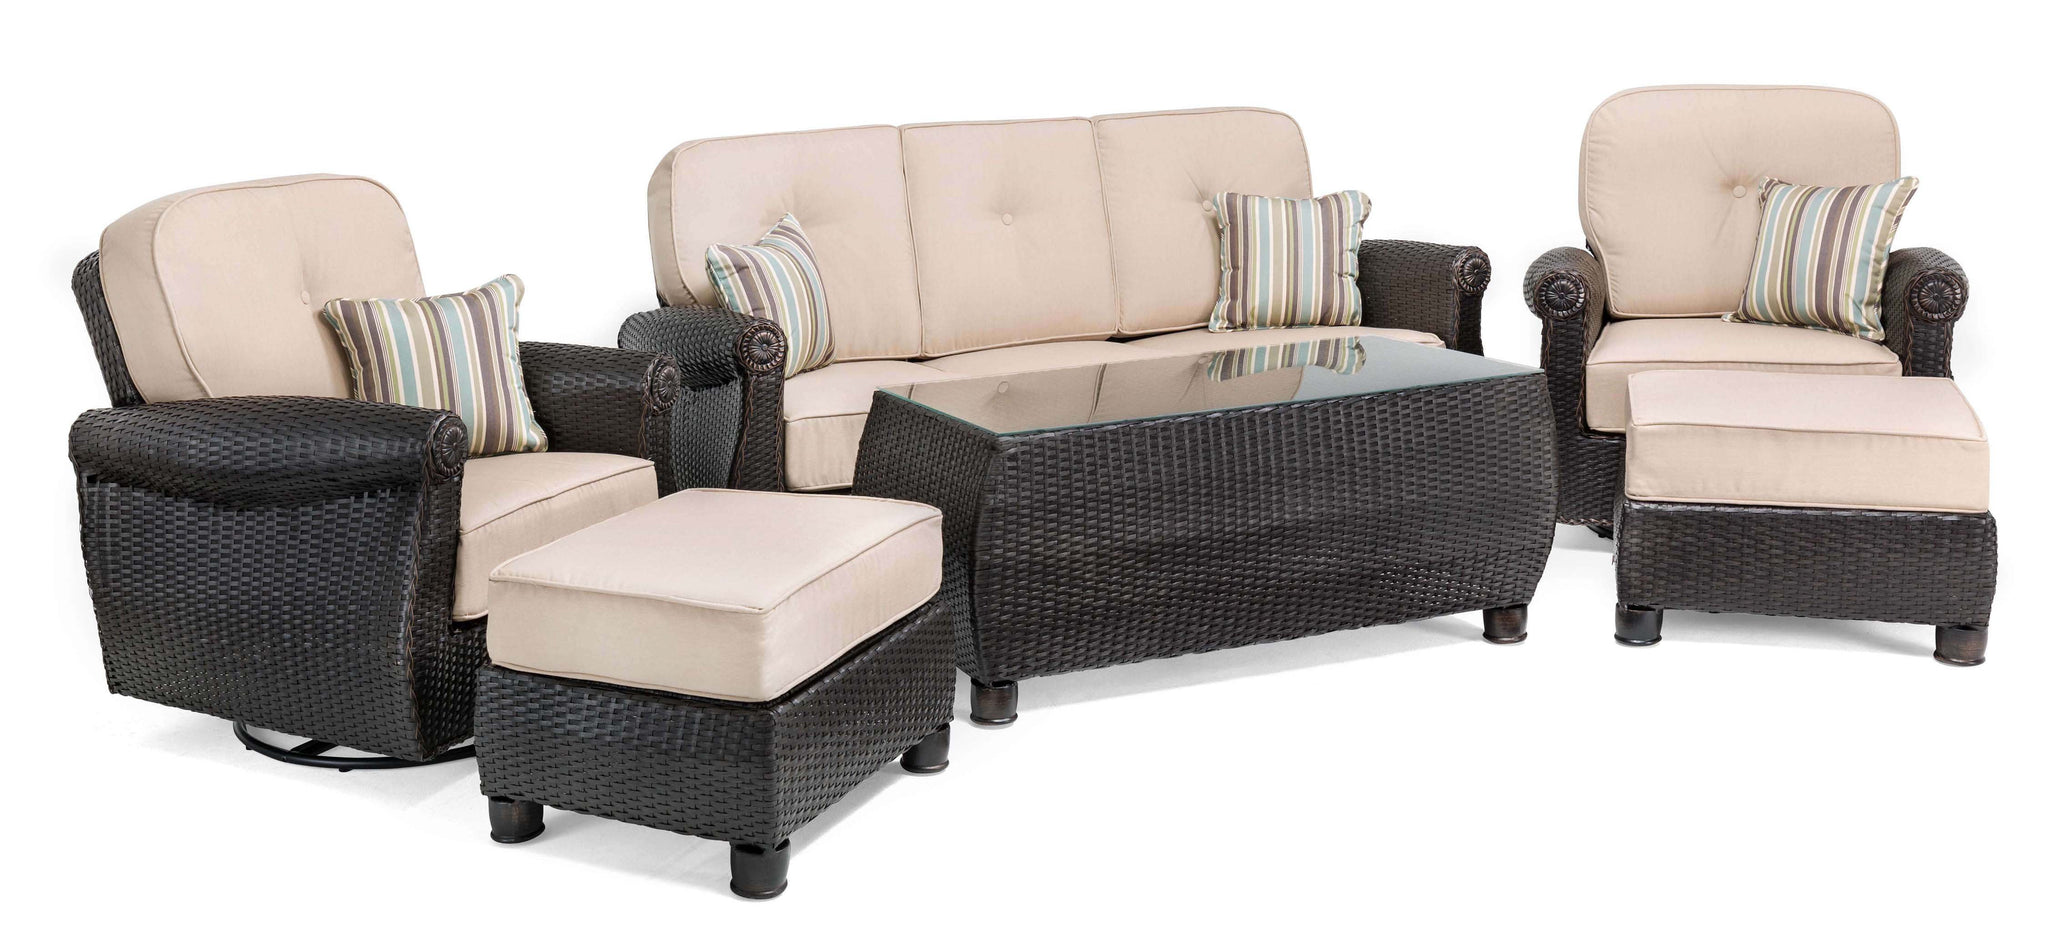 Delicieux Breckenridge 6 Piece Patio Furniture Set: Two Swivel Rockers, Sofa, Coffee  Table, And Two Ottomans (Natural Tan)